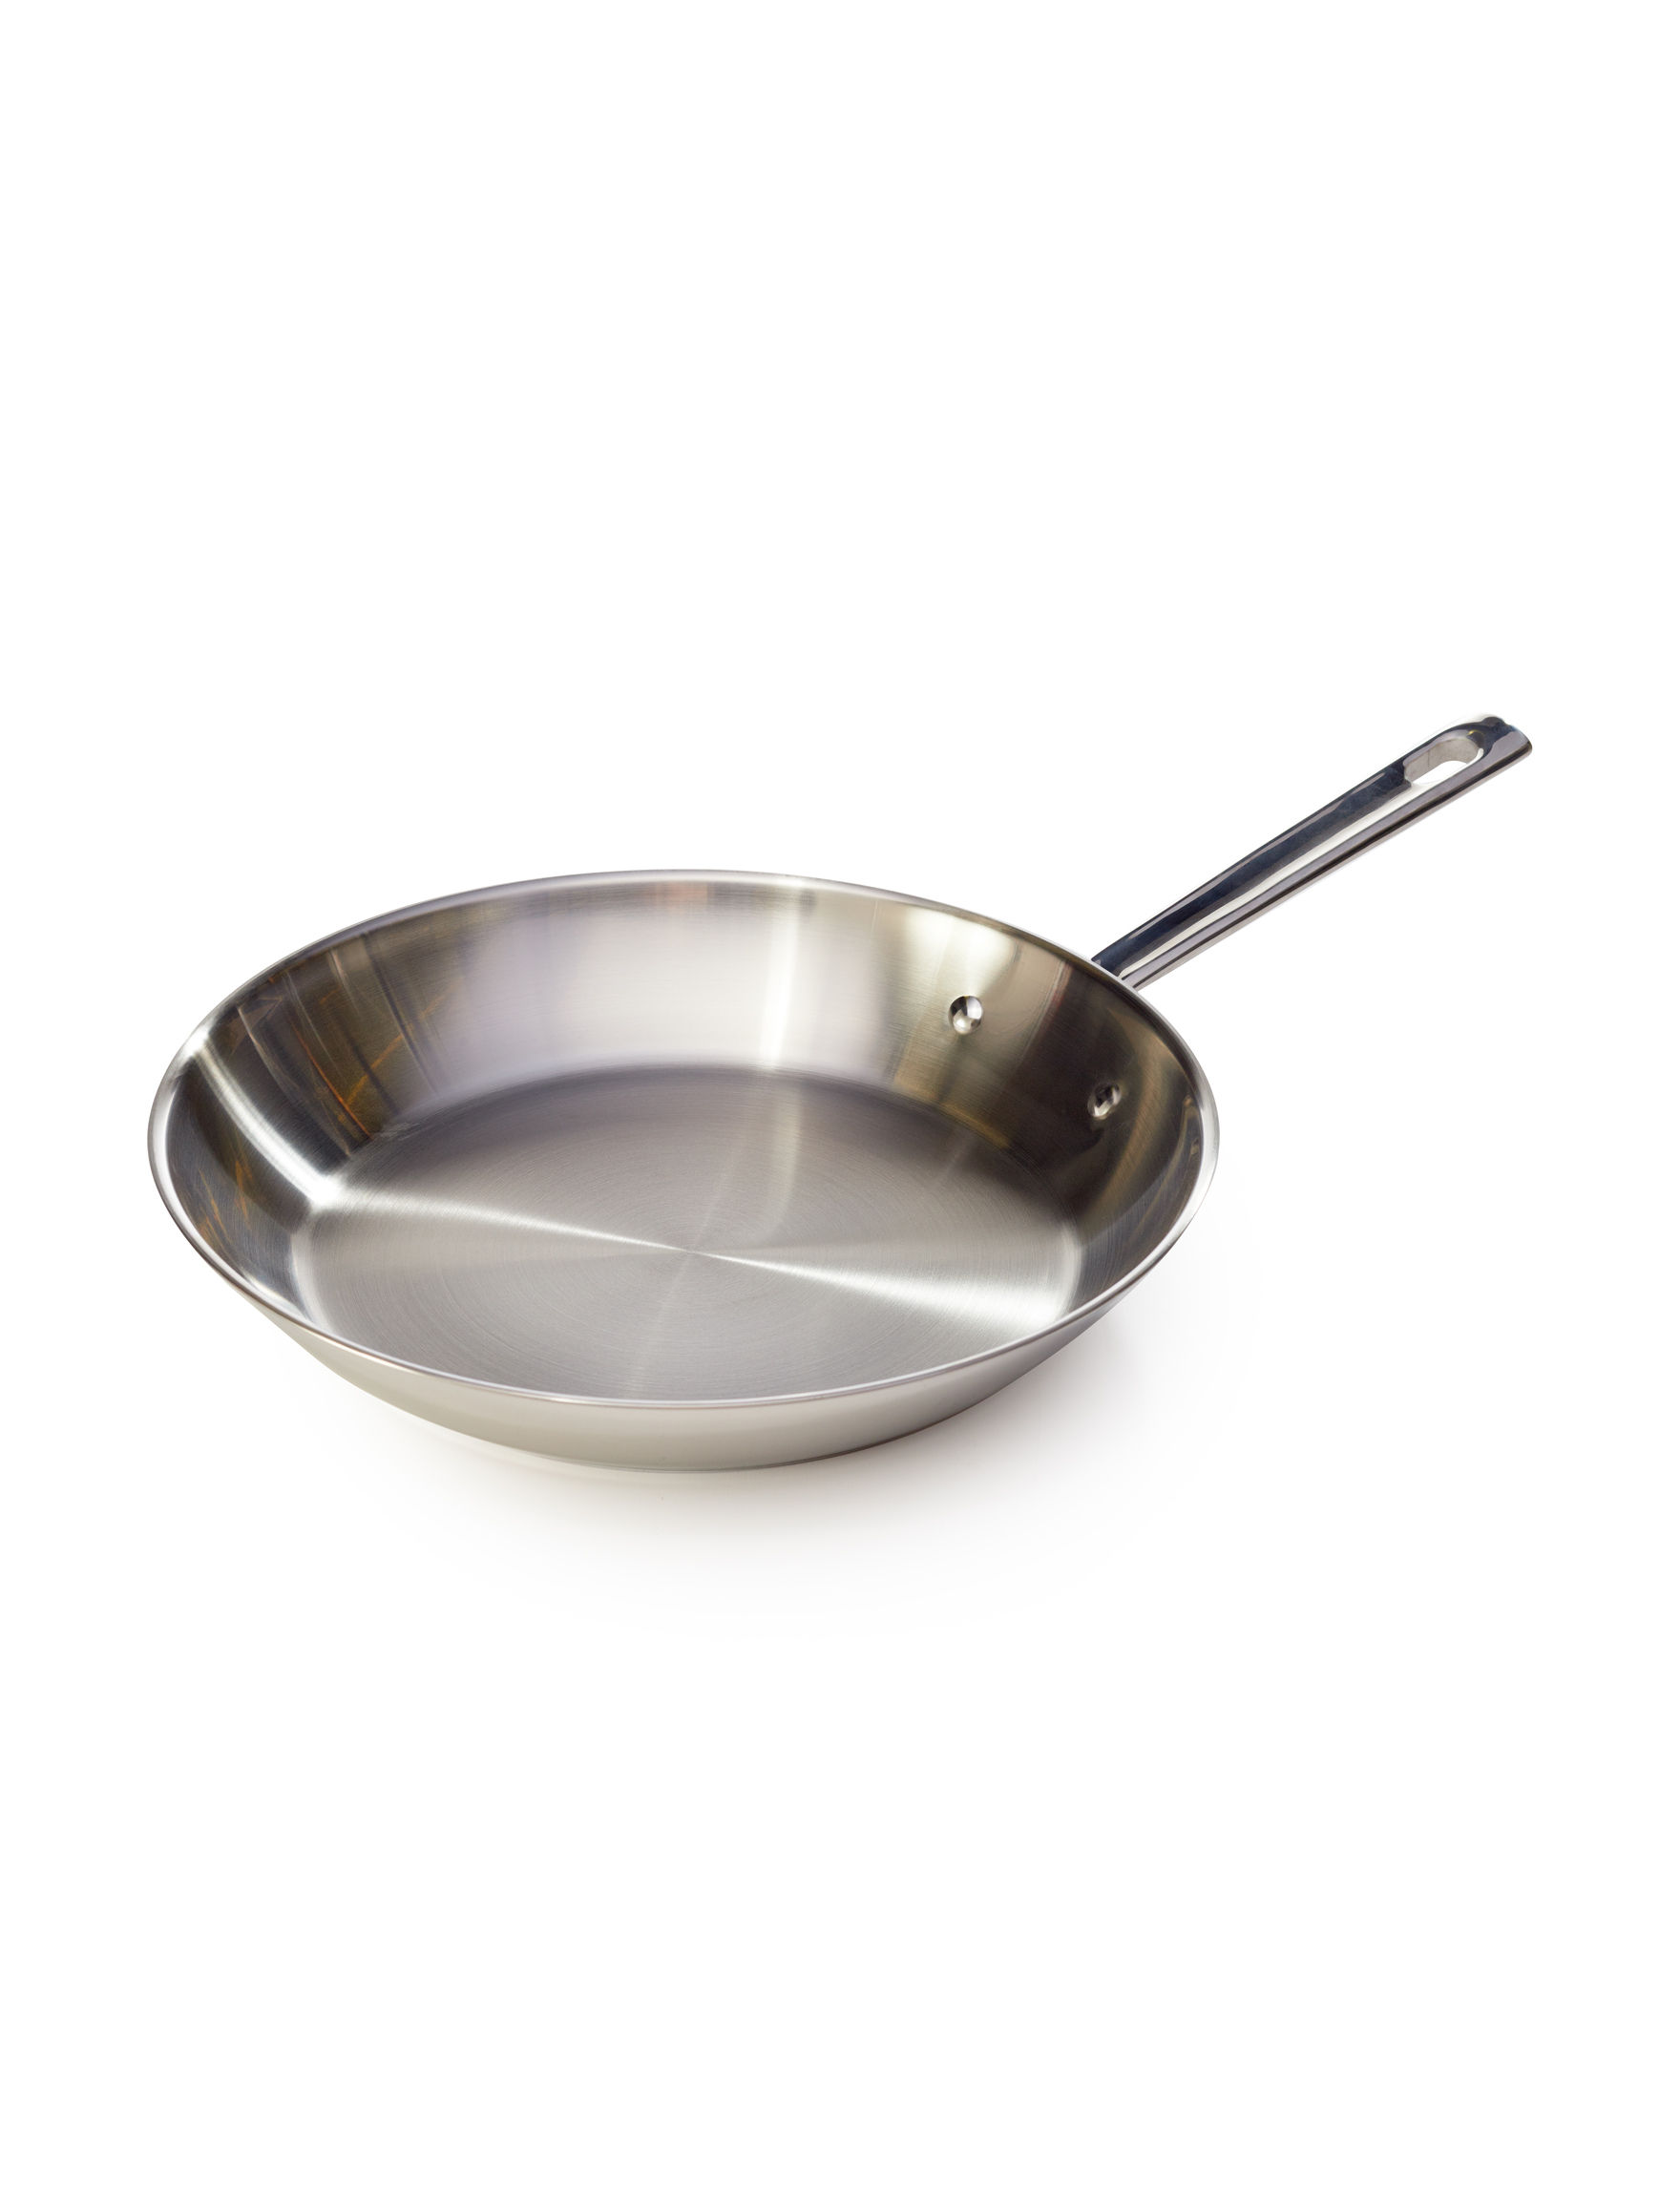 Emeril Lagasse Silver Frying Pans & Skillets Cookware